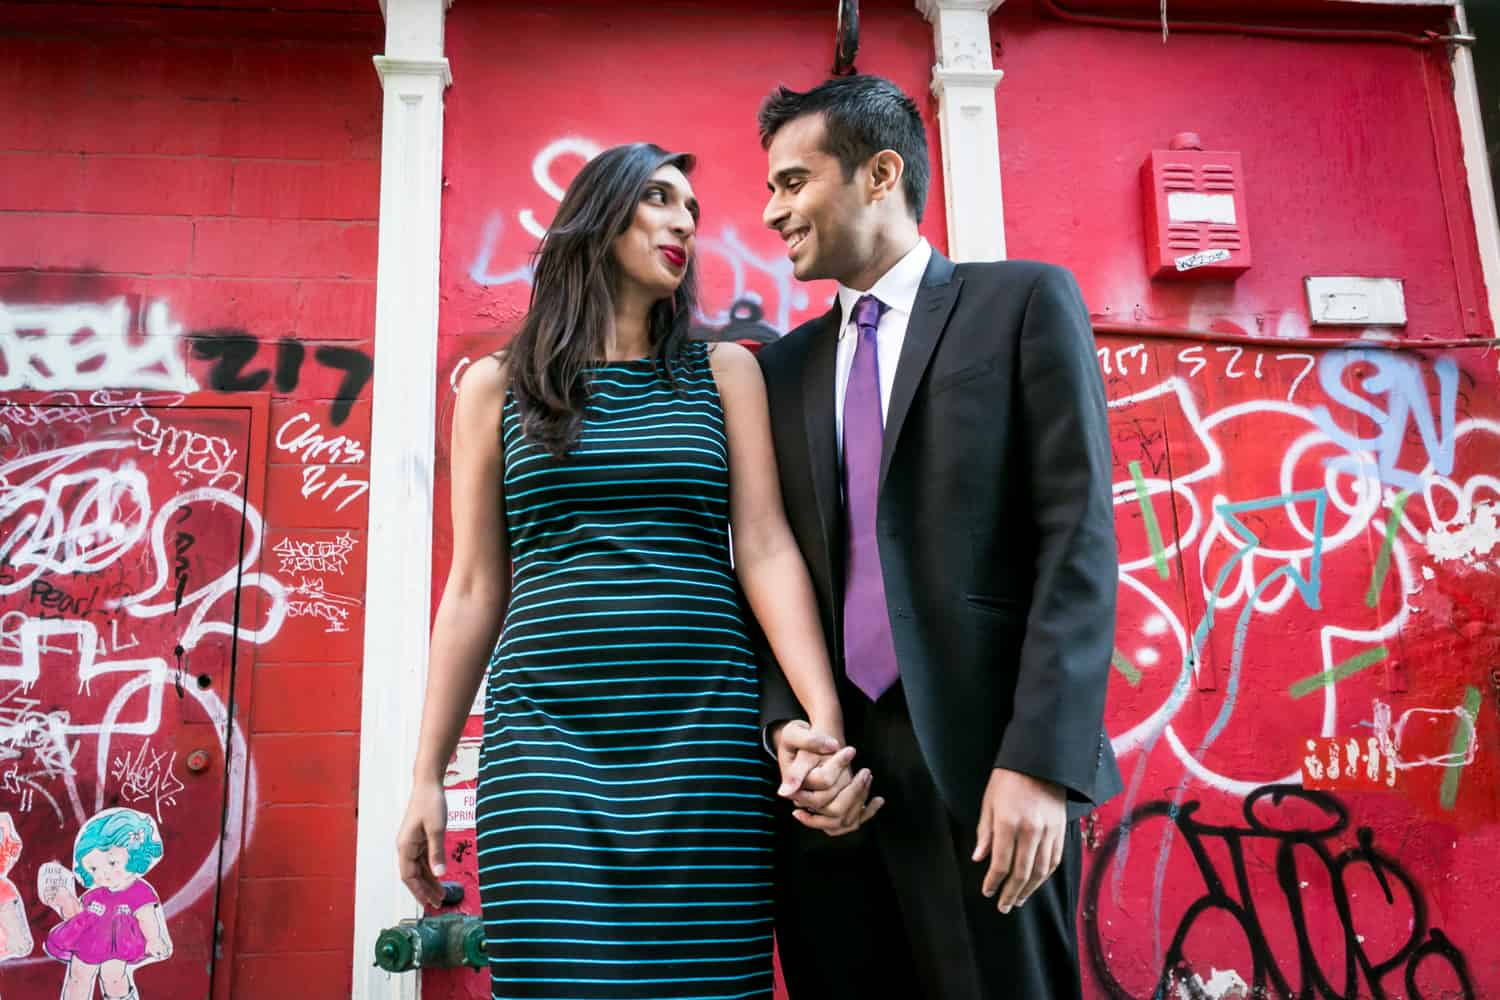 Couple holding hands in front of red graffiti wall in Tribeca